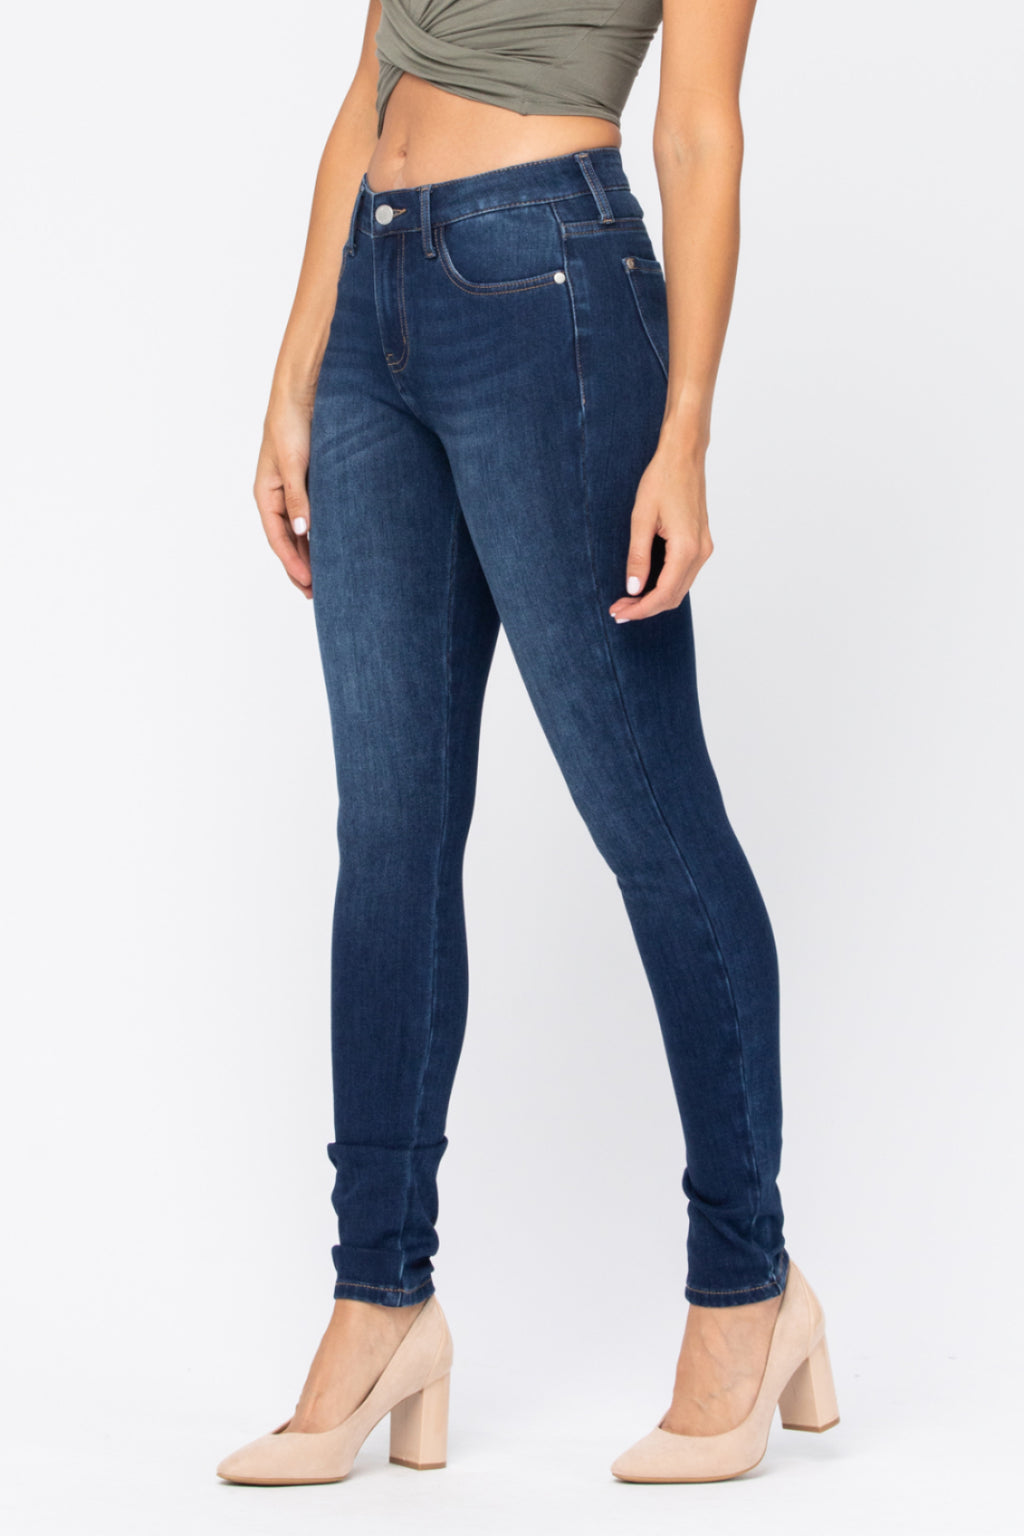 ThermaDenim Dark Thermal Skinny